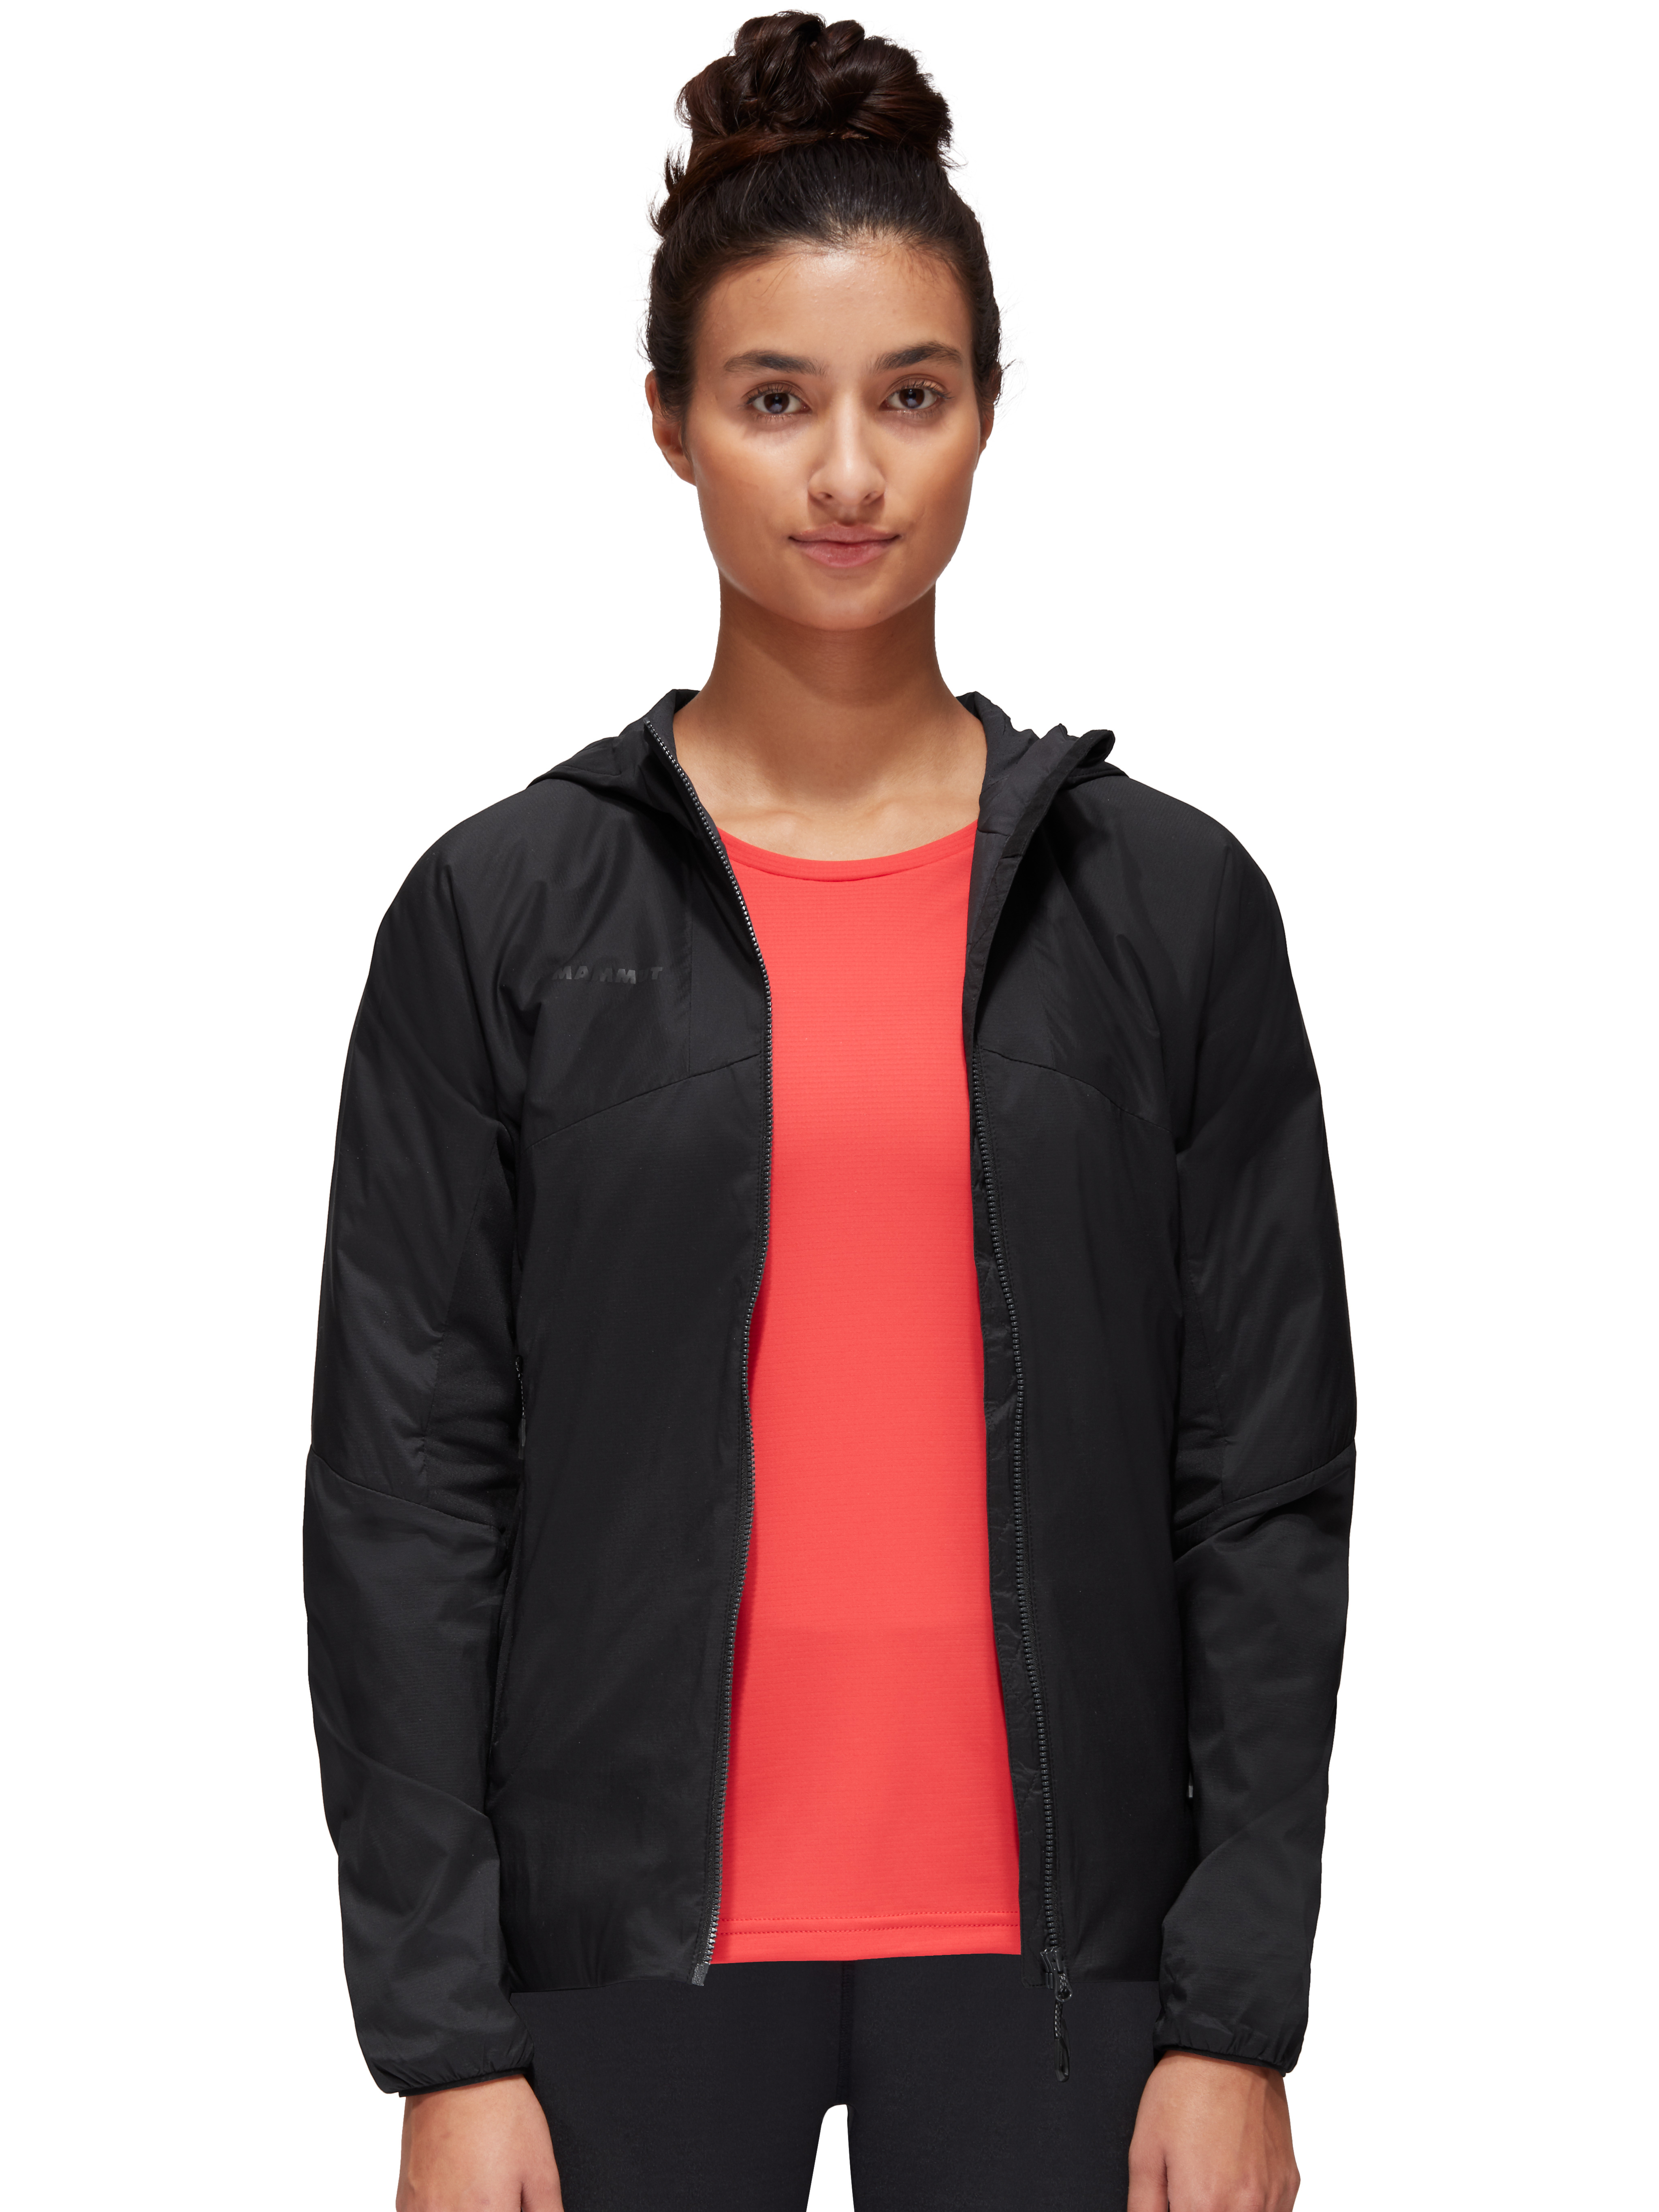 Rime Light IN Flex Hooded Jacket Women product image